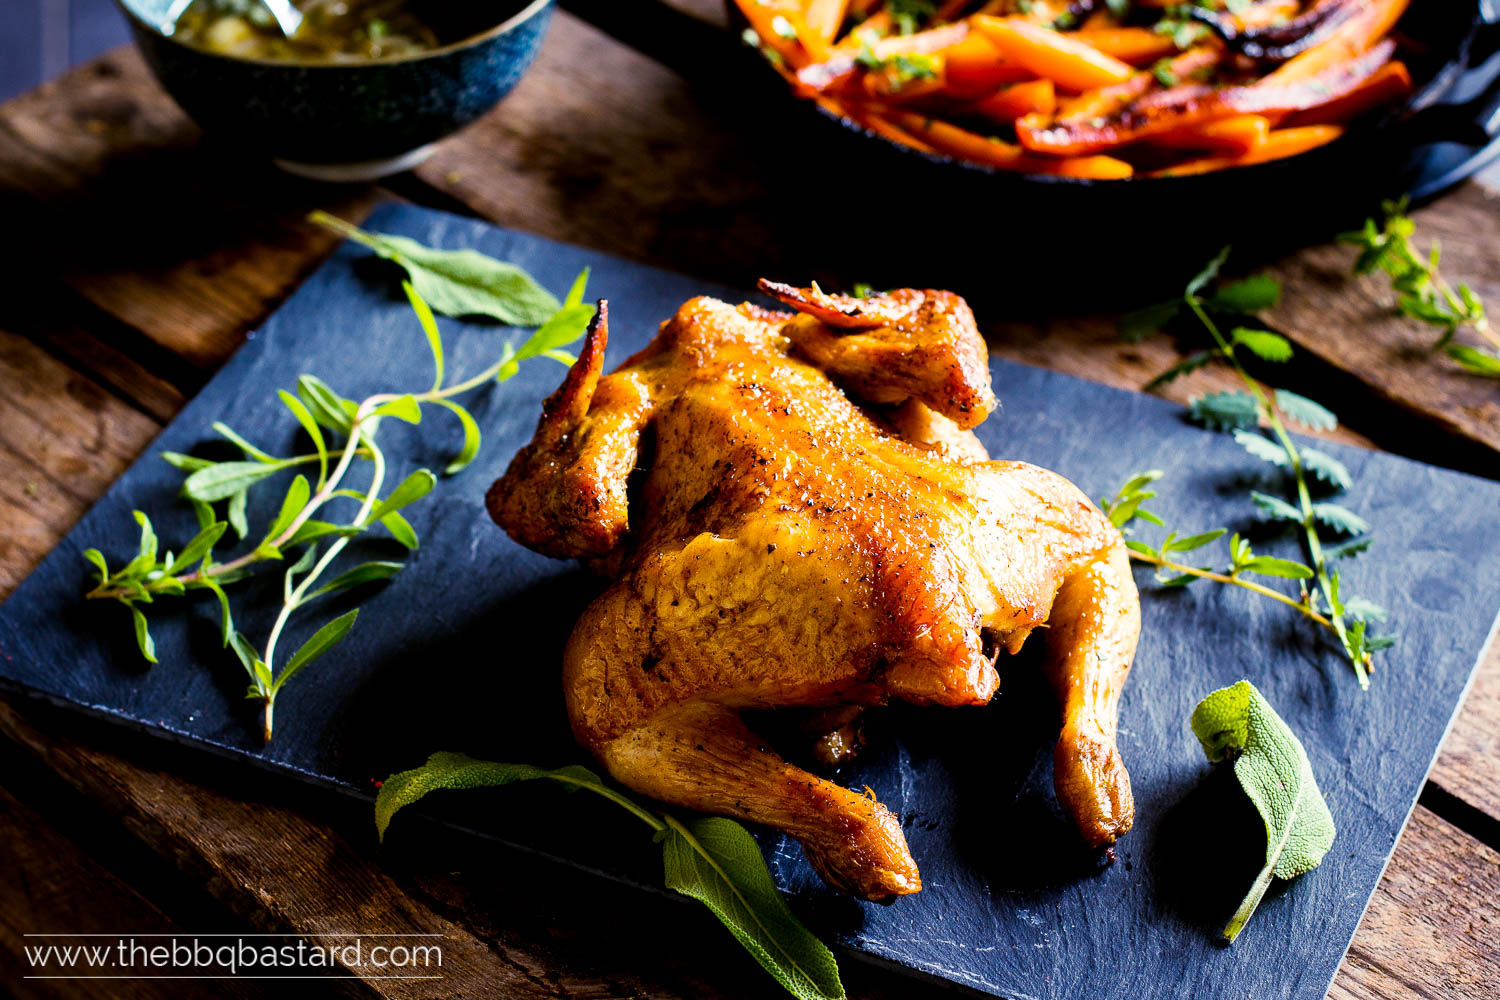 Golden Cockerel – Little Rooster on the BBQ